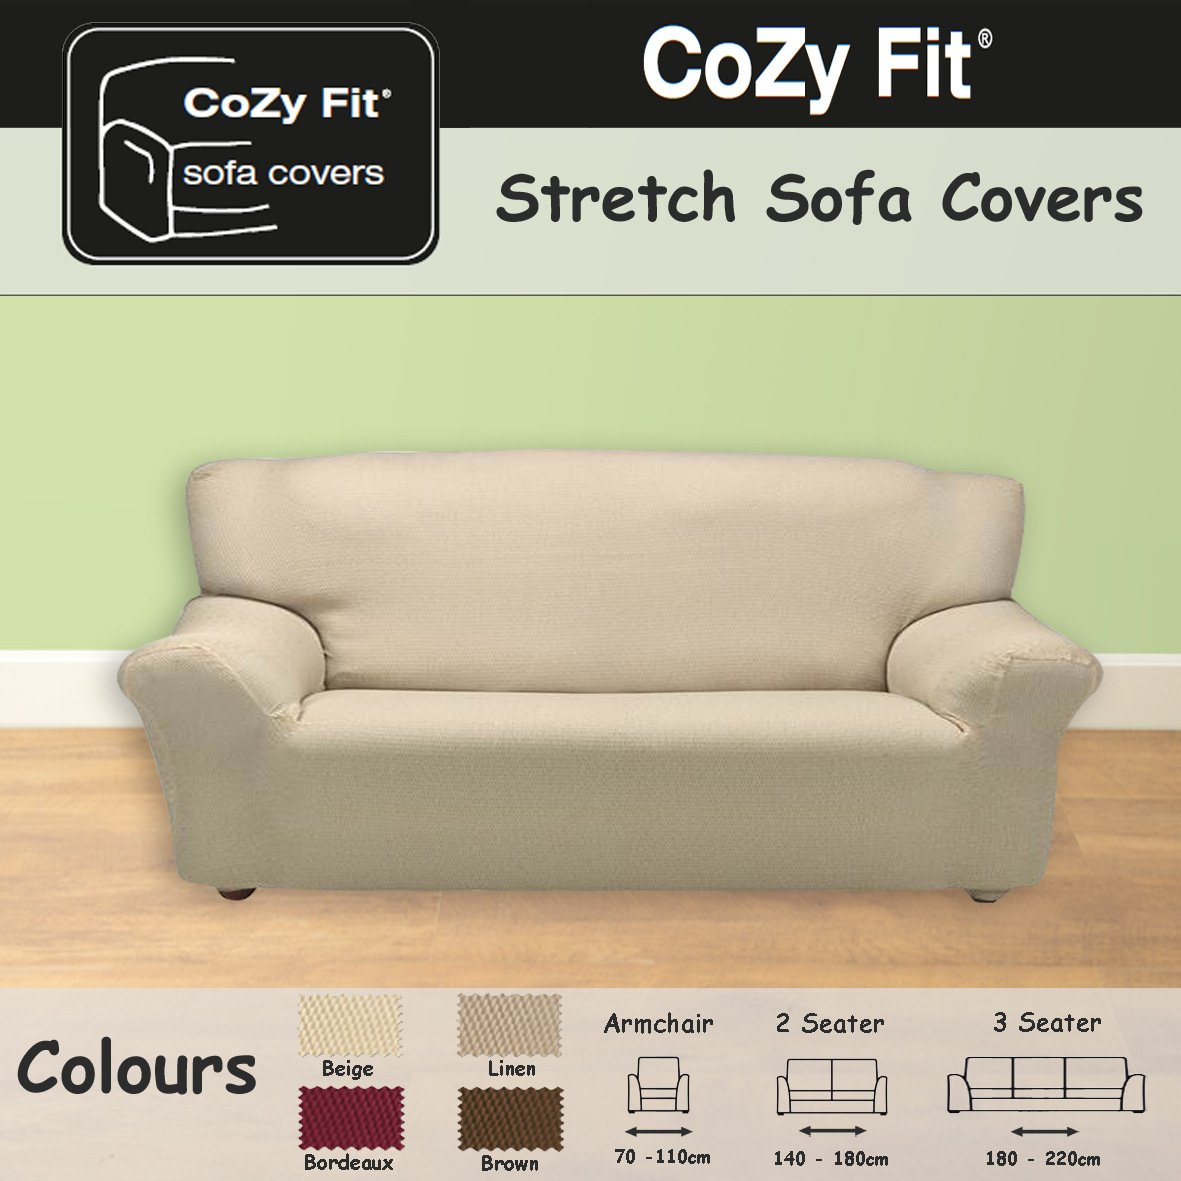 3 SEATER - Easy Stretch Elastic Fabric SOFA/SETTEE SLIP COVER Beige 'Sofa Huggers' by VICEROY BEDDING